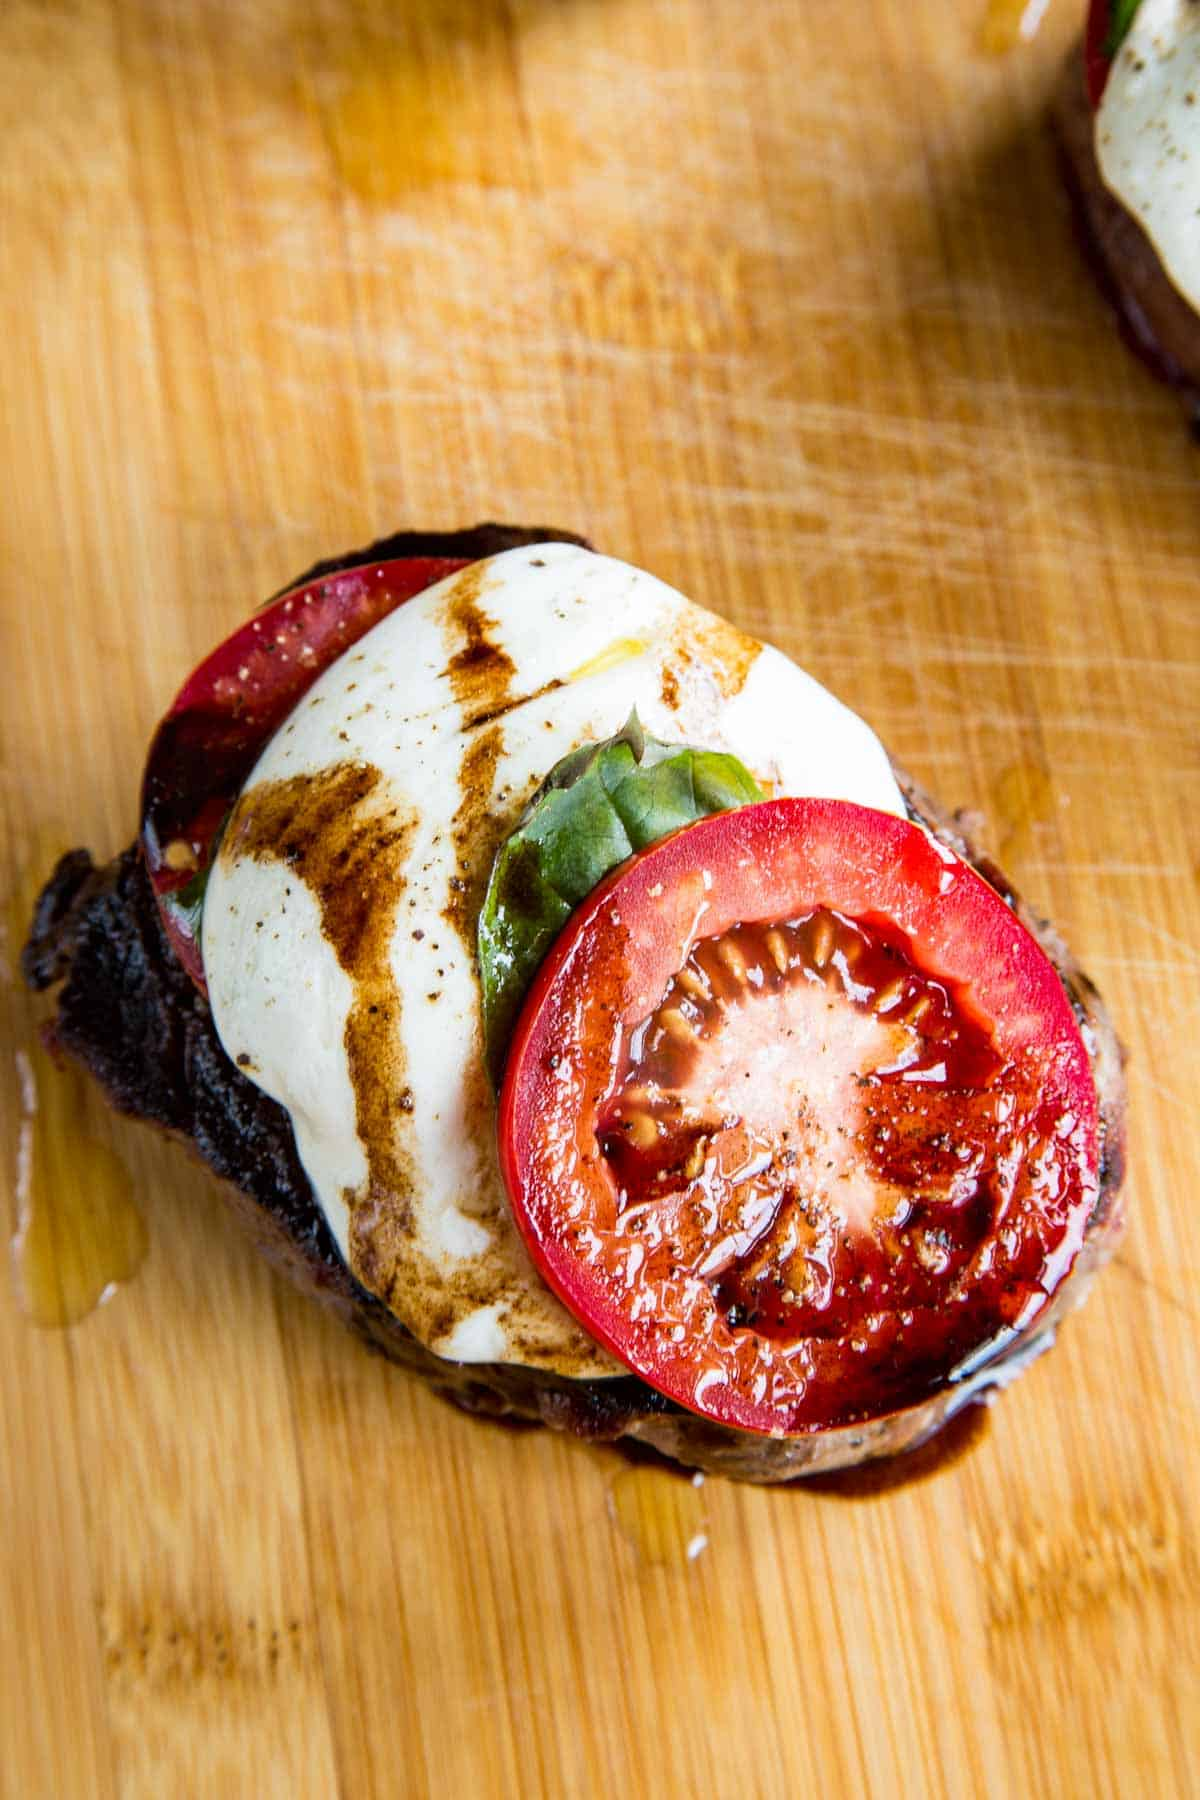 grilled filet steak with caprese salad topping